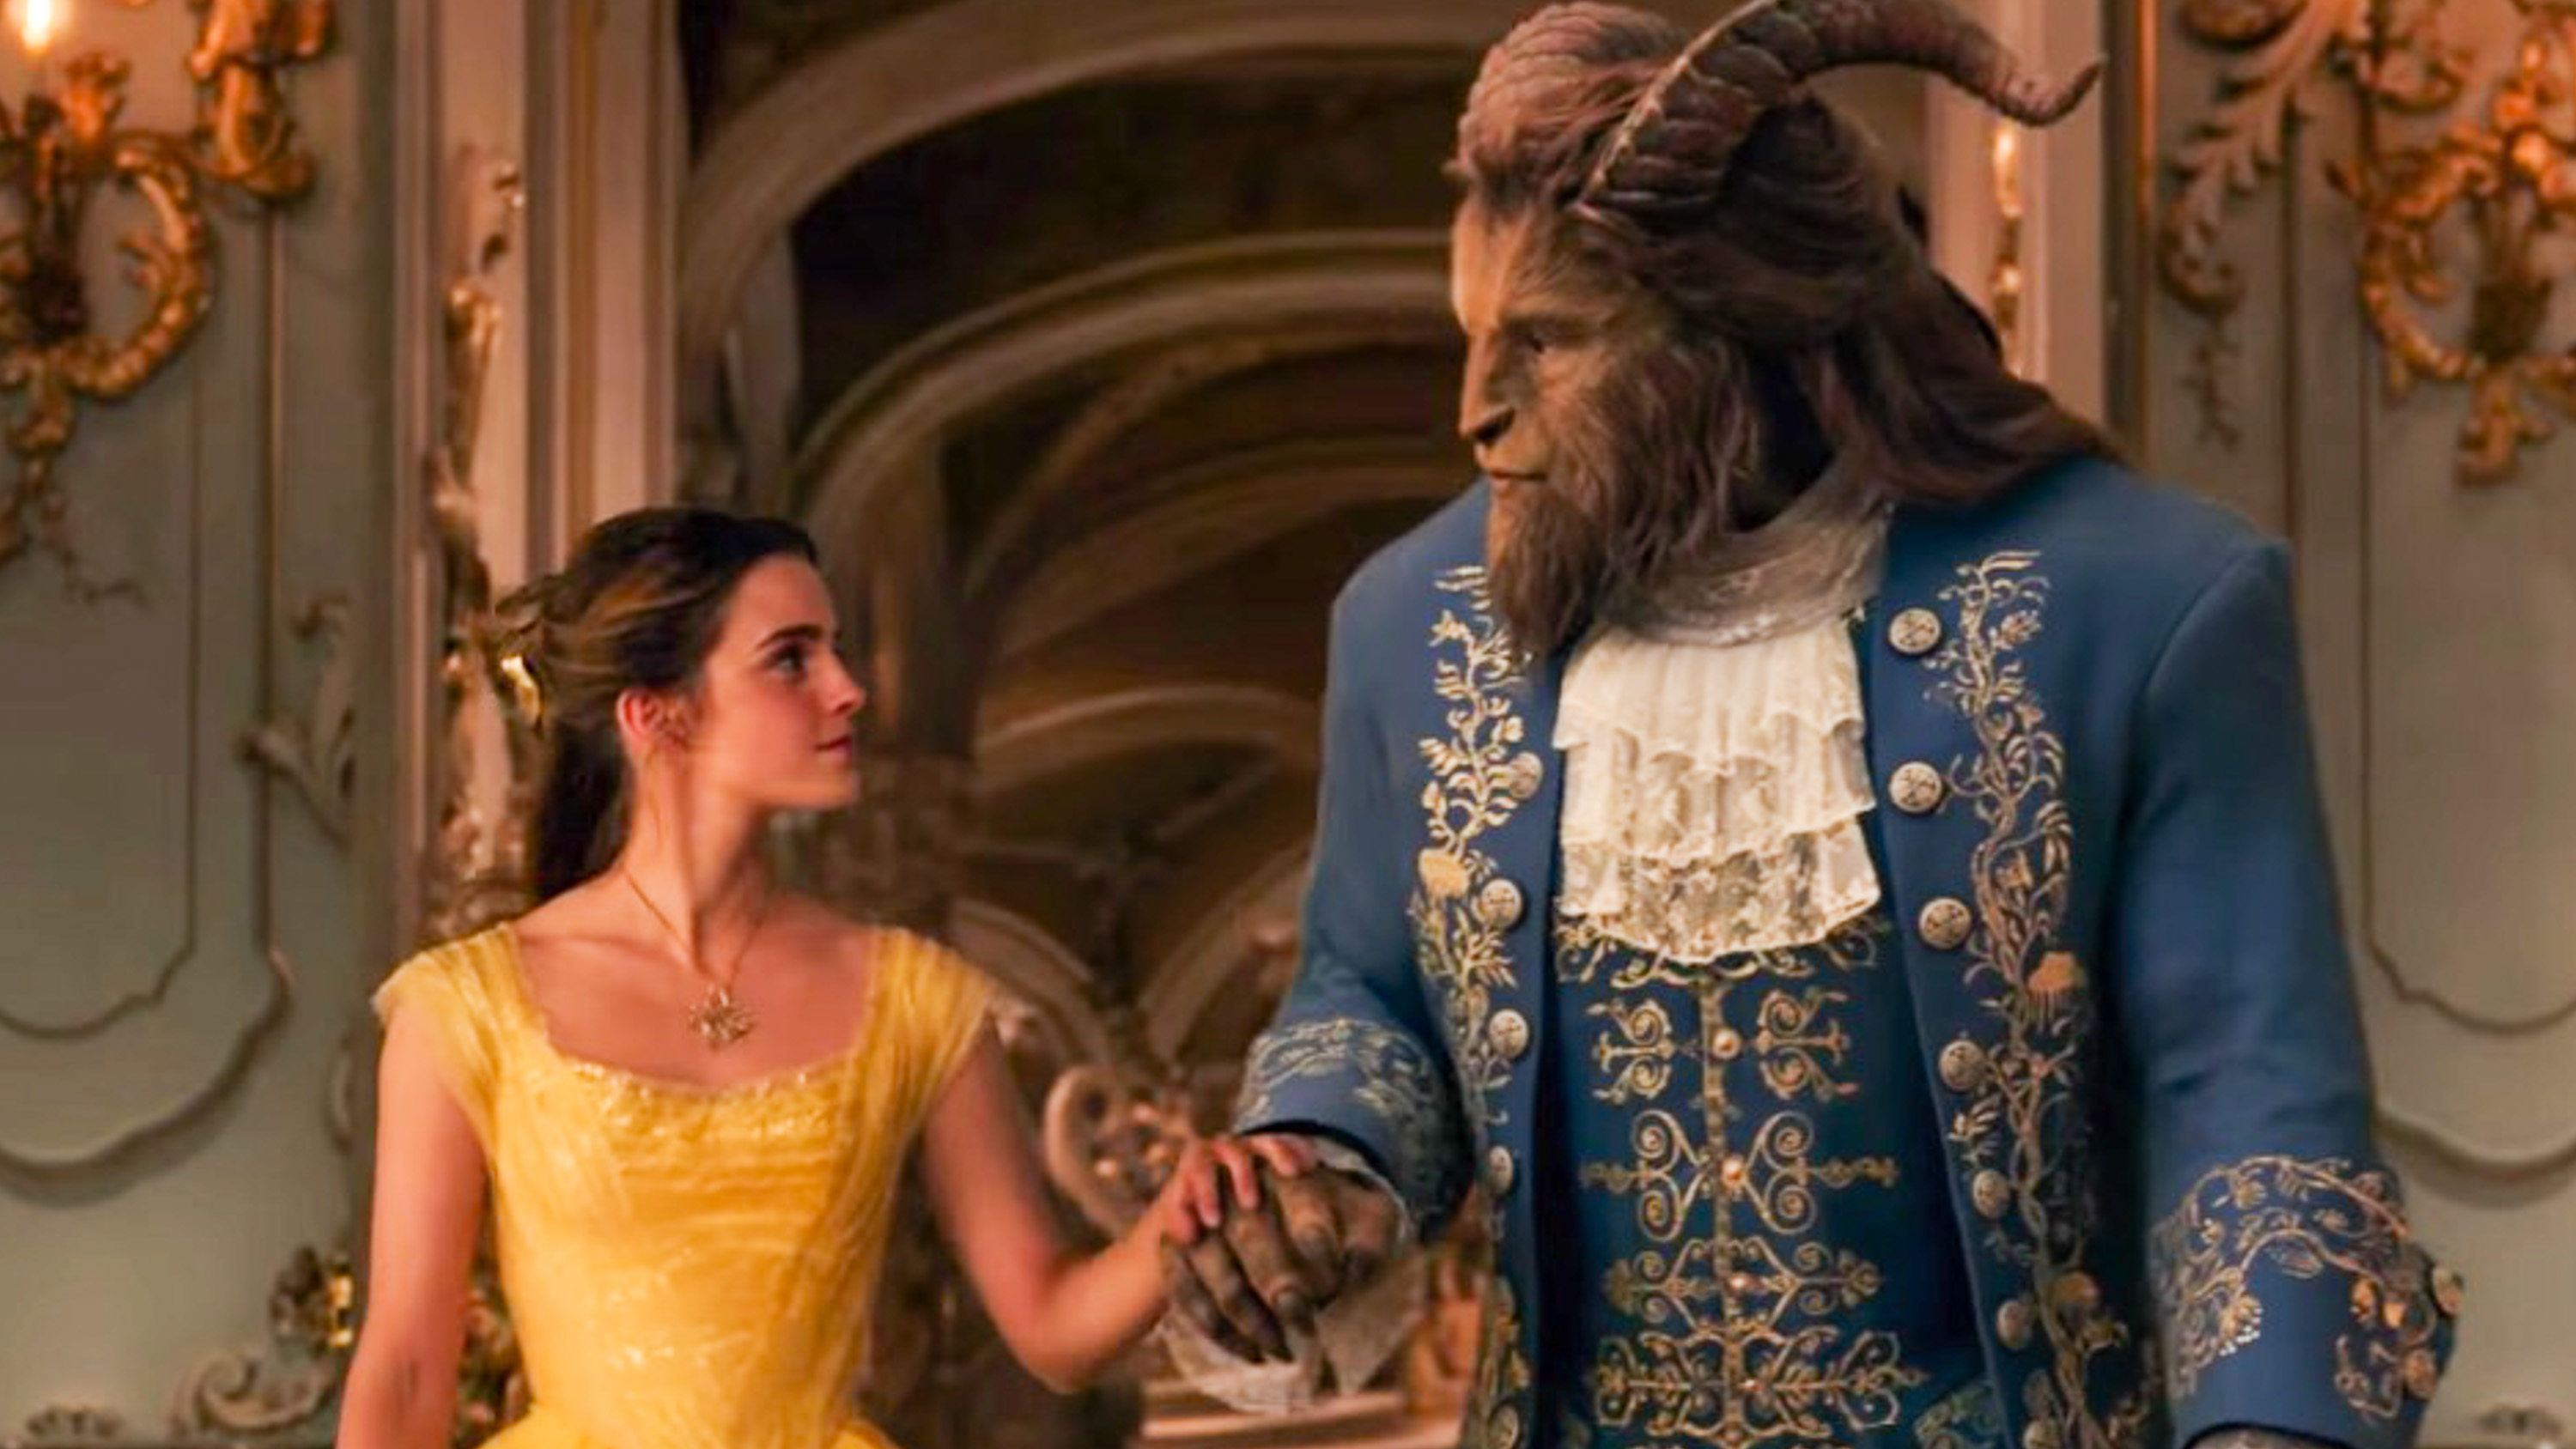 'Beauty And The Beast' Review: Pretty But Redundant